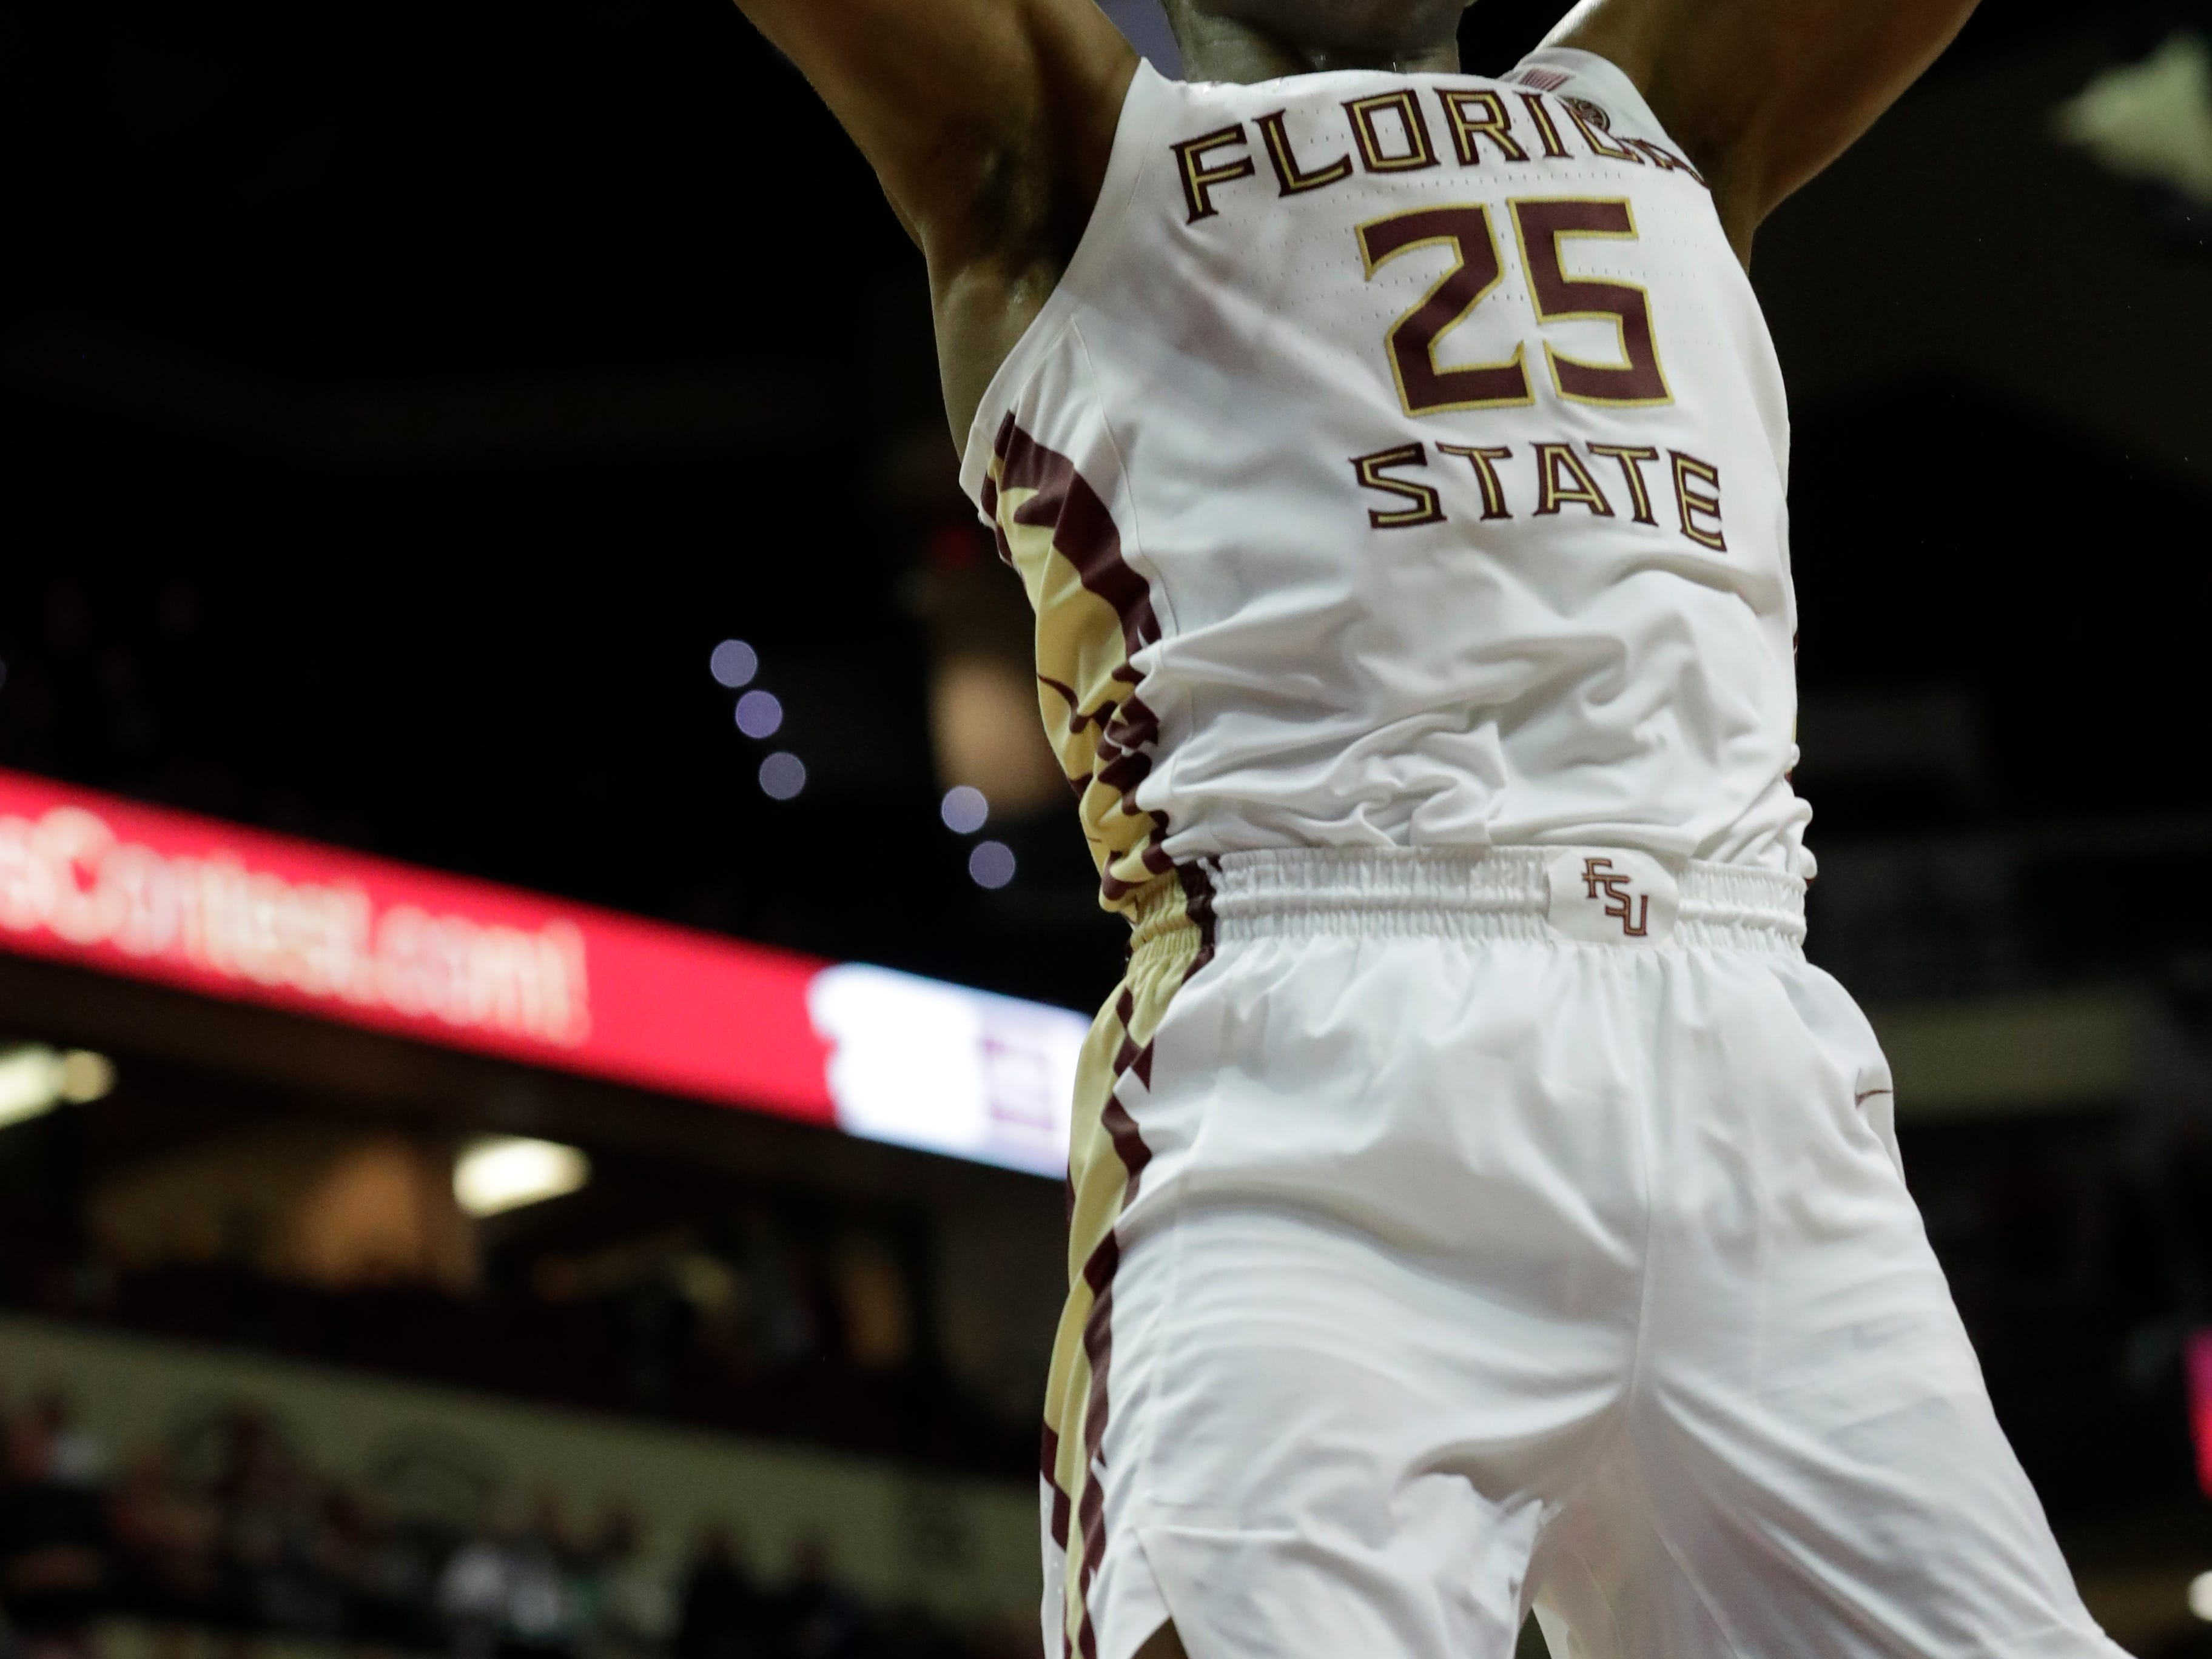 Florida State Seminoles forward Mfiondu Kabengele (25) slam dunks on the Tigers. The Florida State Seminoles face off against the Clemson Tigers at the Tucker Civic Center, Tuesday, Jan. 22, 2019.